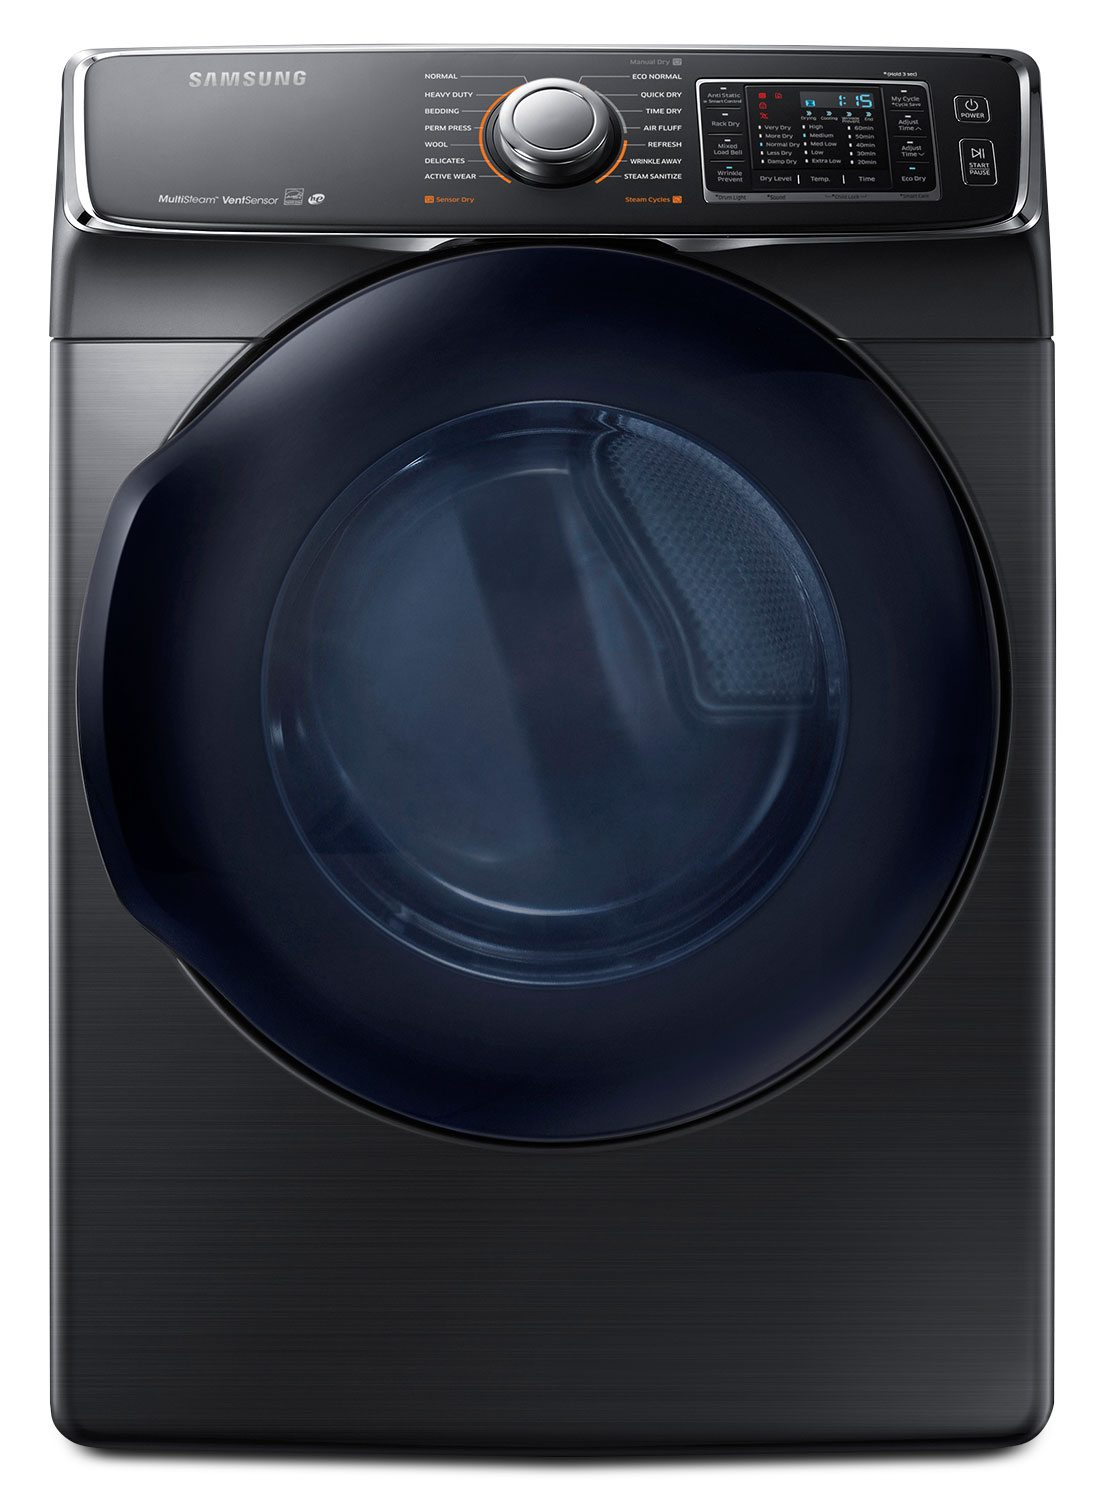 Washers and Dryers - Samsung 7.5 Cu. Ft. Electric Dryer – Black Stainless Steel DV50K7500EV/AC